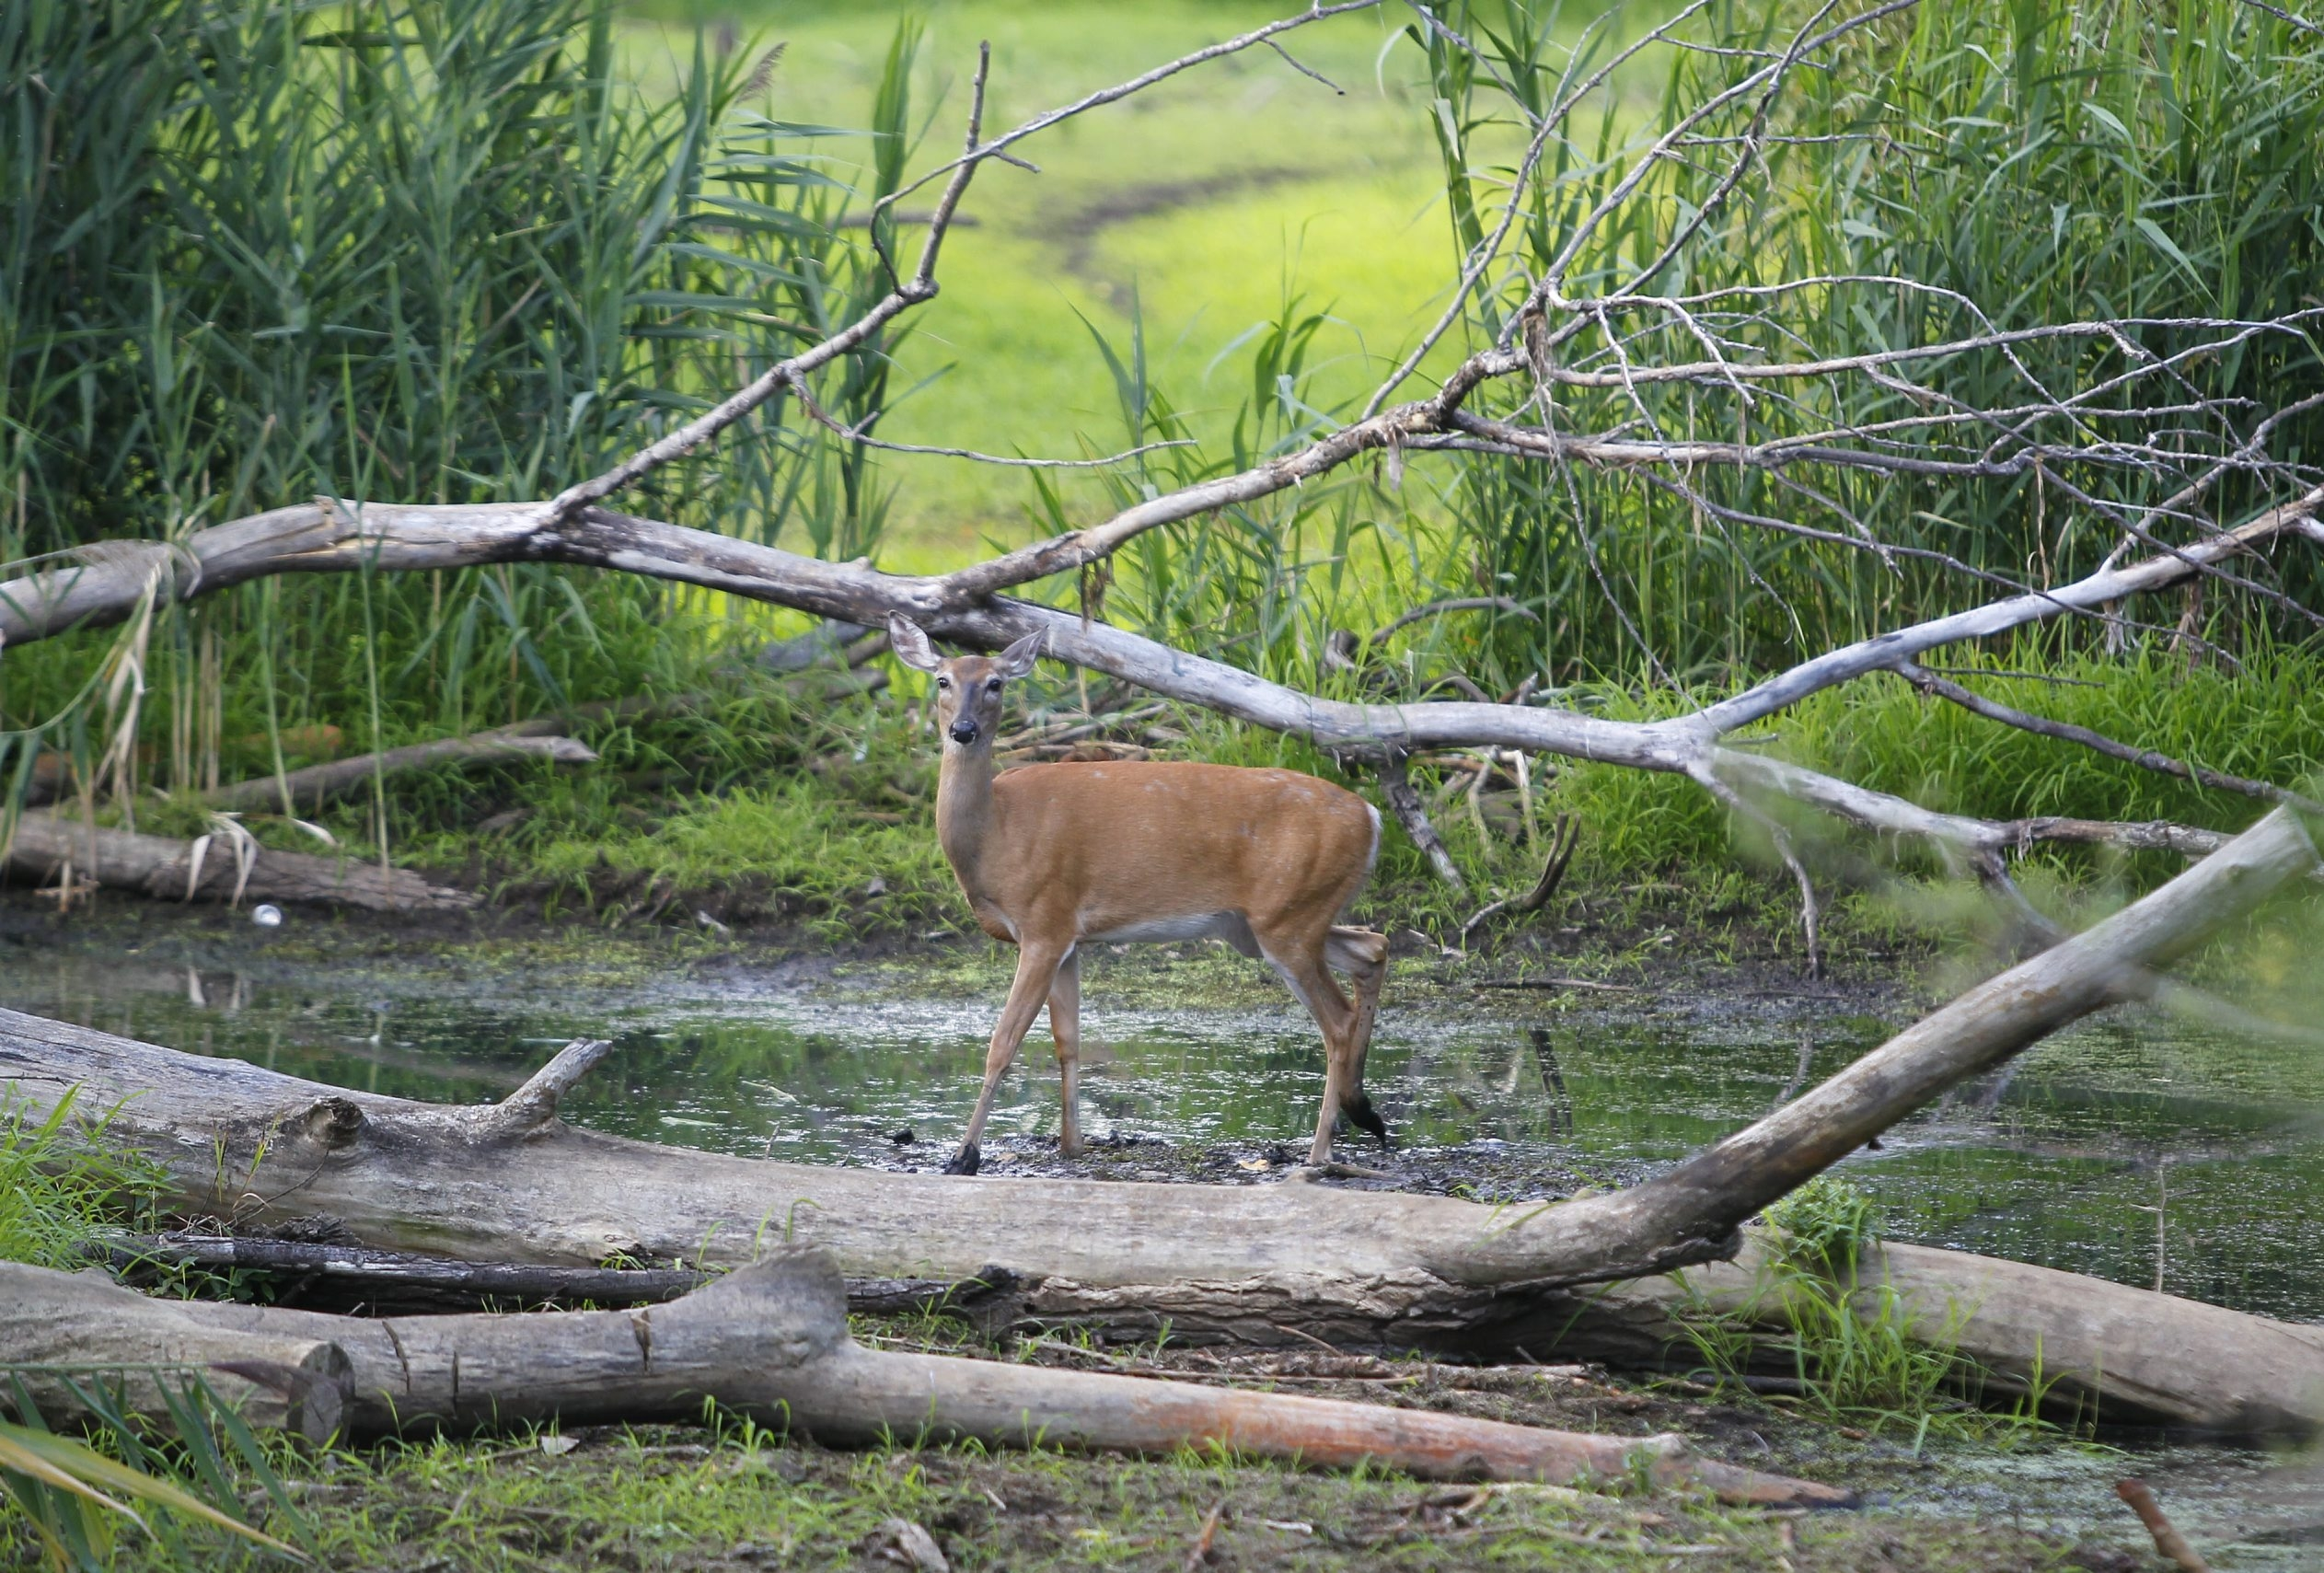 {FOR SPOTLIGHT STORY}A whitetailed deer walks through the Tifft Nature Preserve Monday, August 20, 2012.  {Mark Mulville / Buffalo News}